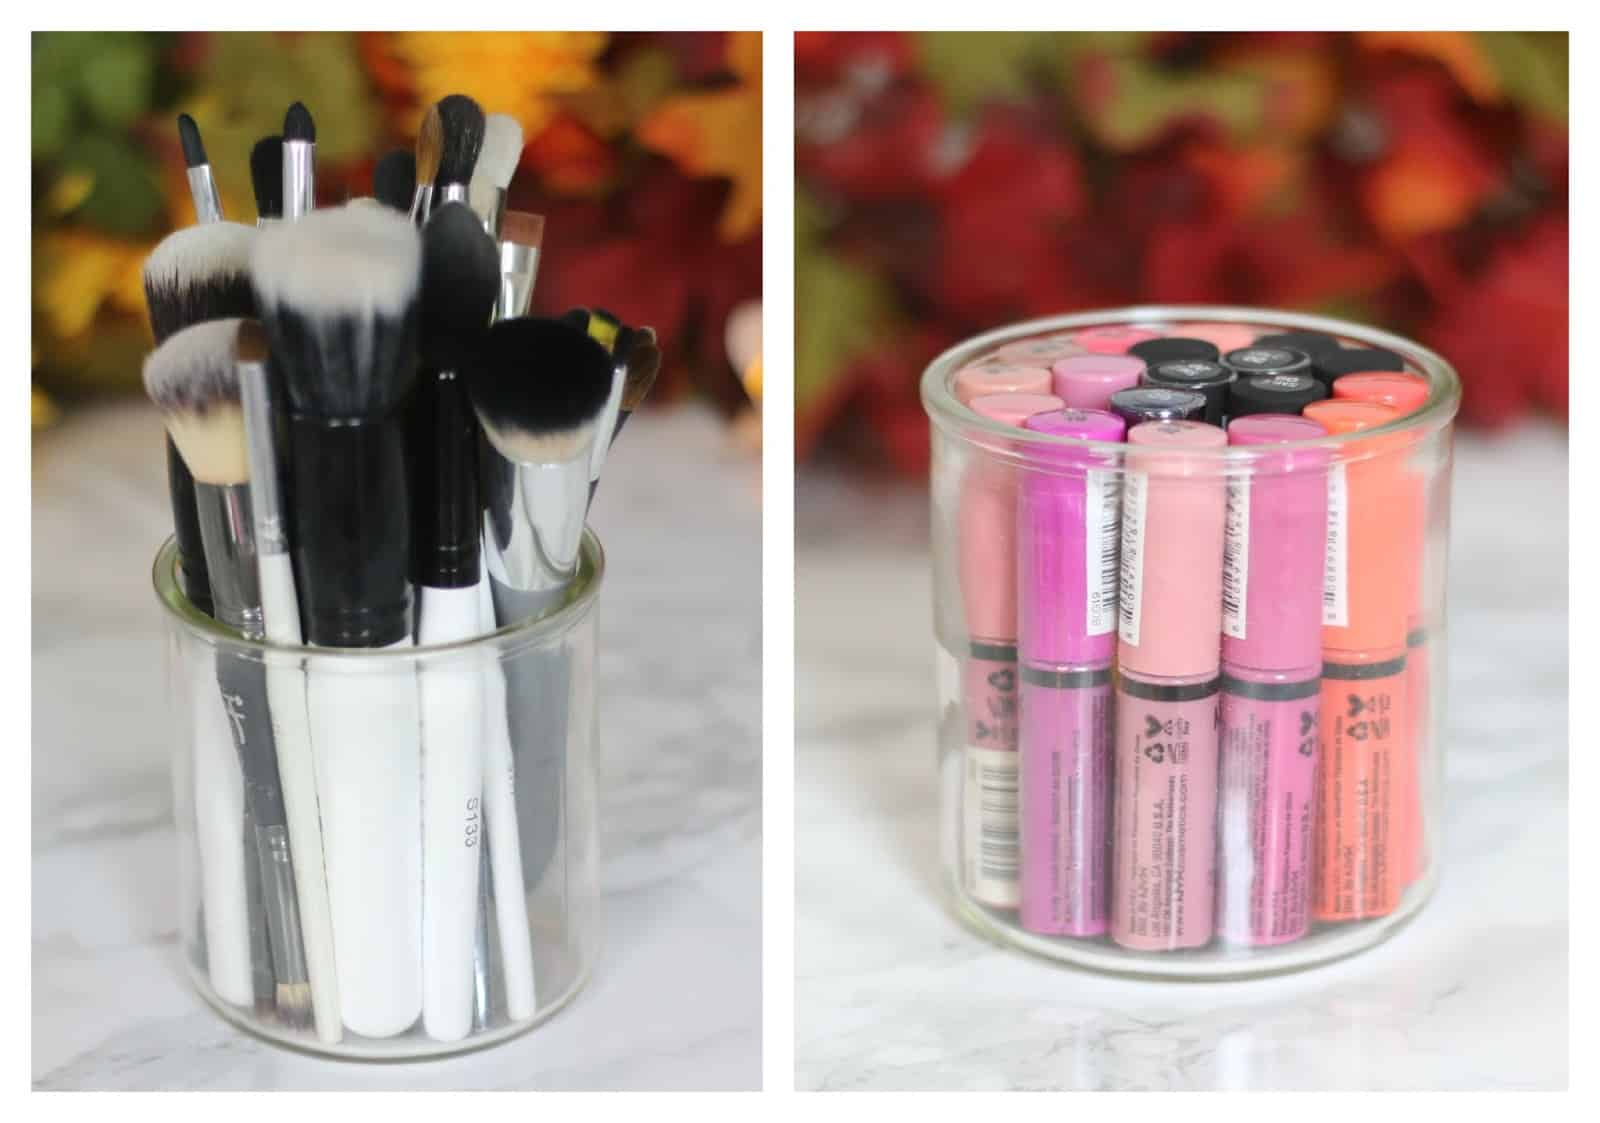 Makeup brush storage options from old candle jar